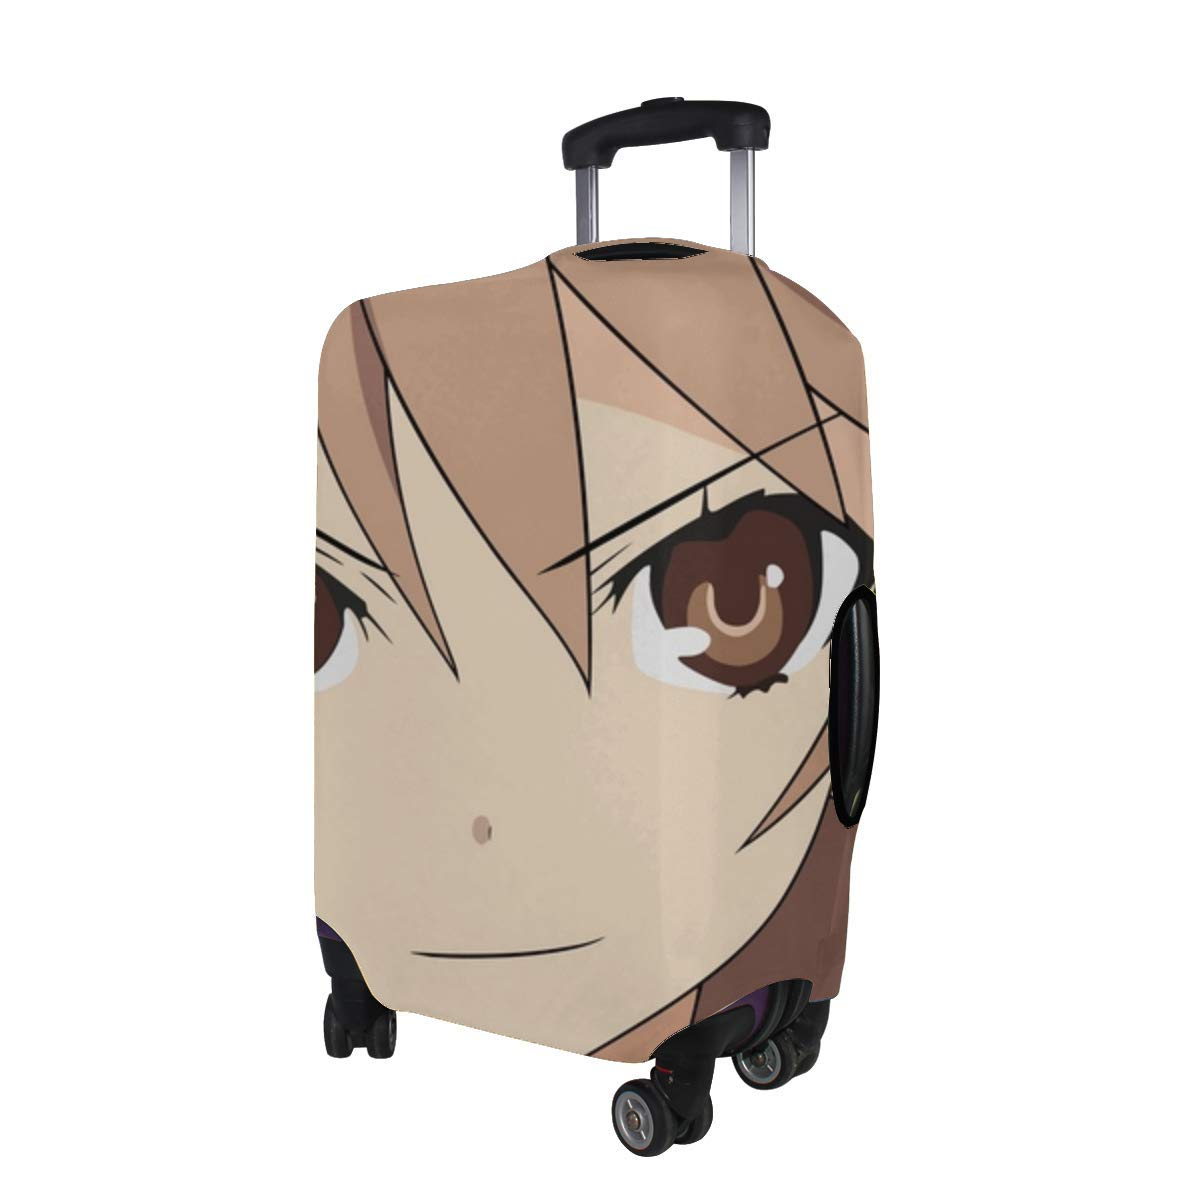 Maxm Ookami-san To Shichinin No Nakama-tachi Ookami Ryouko Look Girl Bangs Close-up Pattern Print Travel Luggage Protector Baggage Suitcase Cover Fits 18-21 Inch Luggage